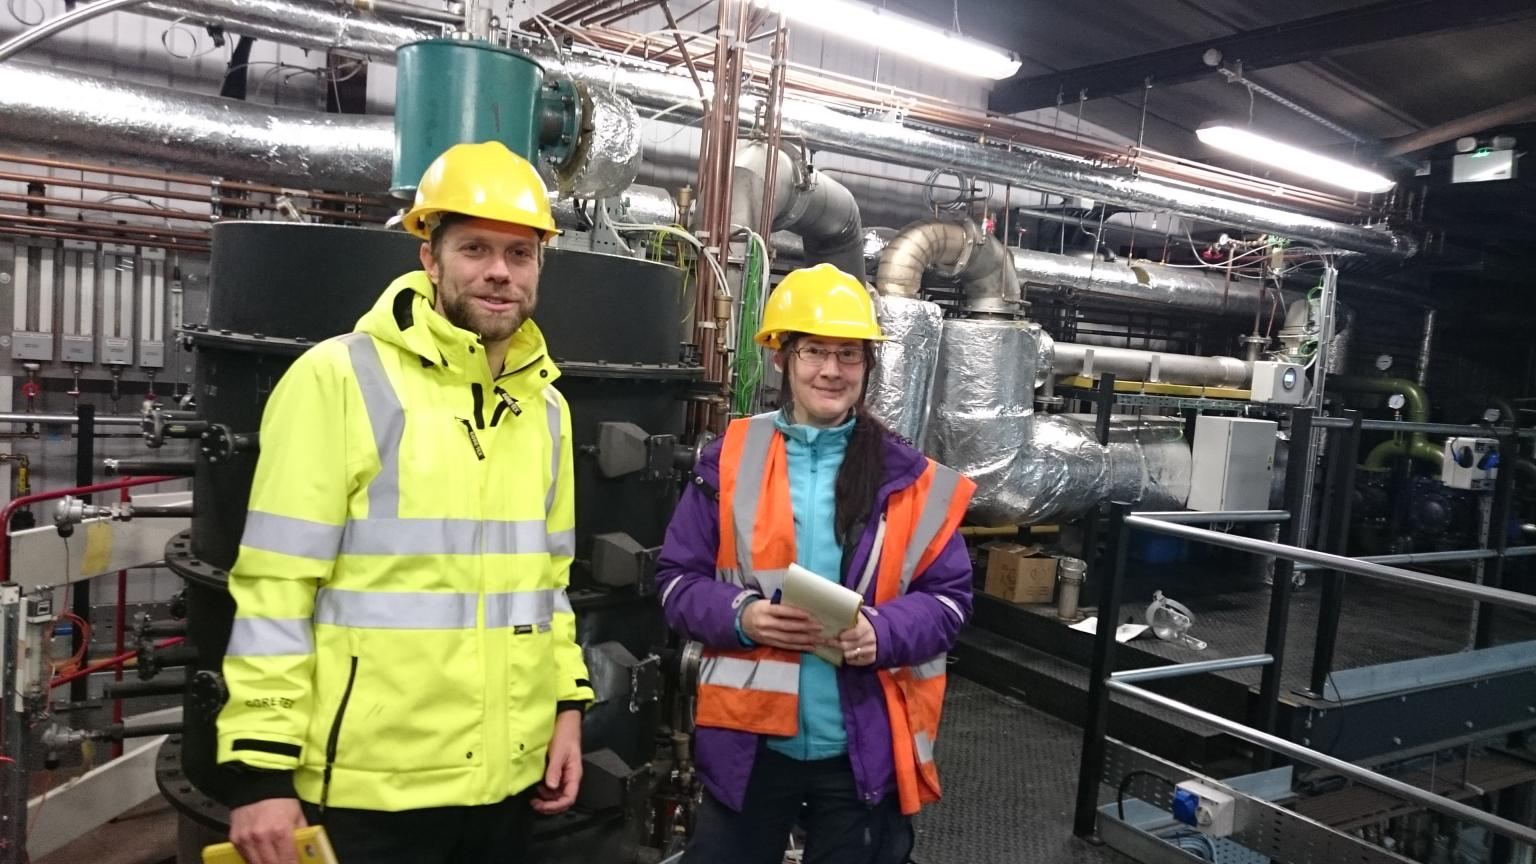 Dr Stuart Gilfillan and Dr Stephanie Flude, of the University of Edinburgh's School of GeoSciences, collect CO2 samples at a pilot facility